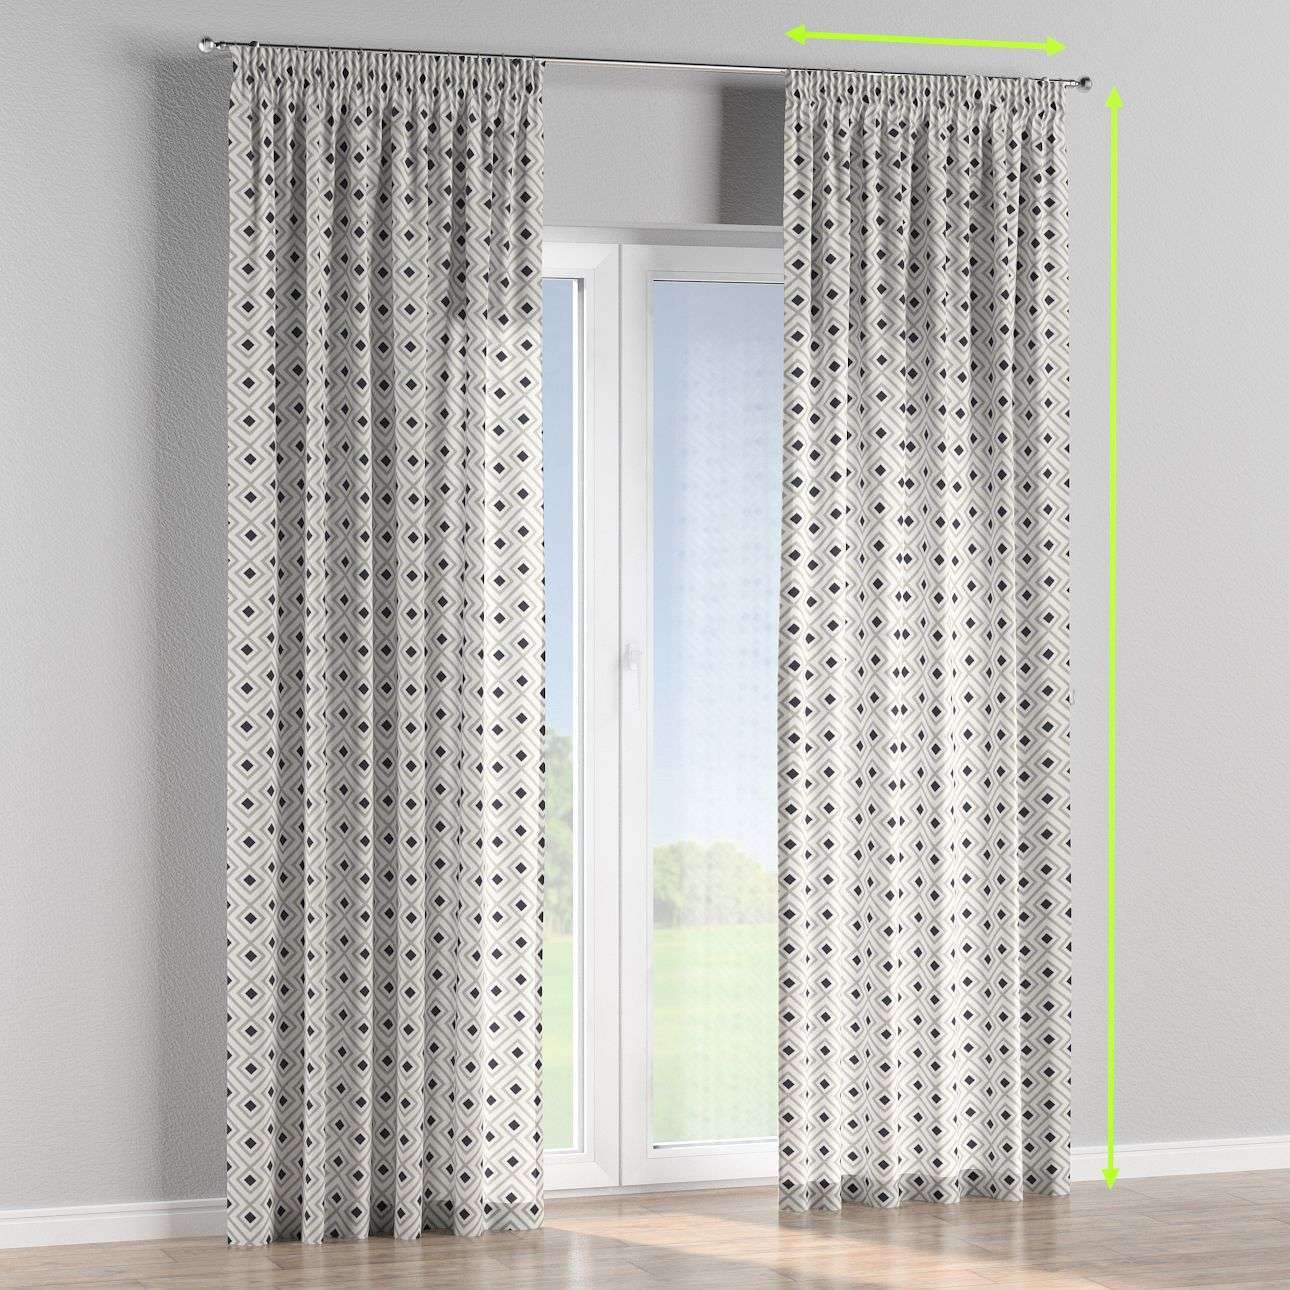 Pencil pleat curtains in collection Geometric, fabric: 141-44